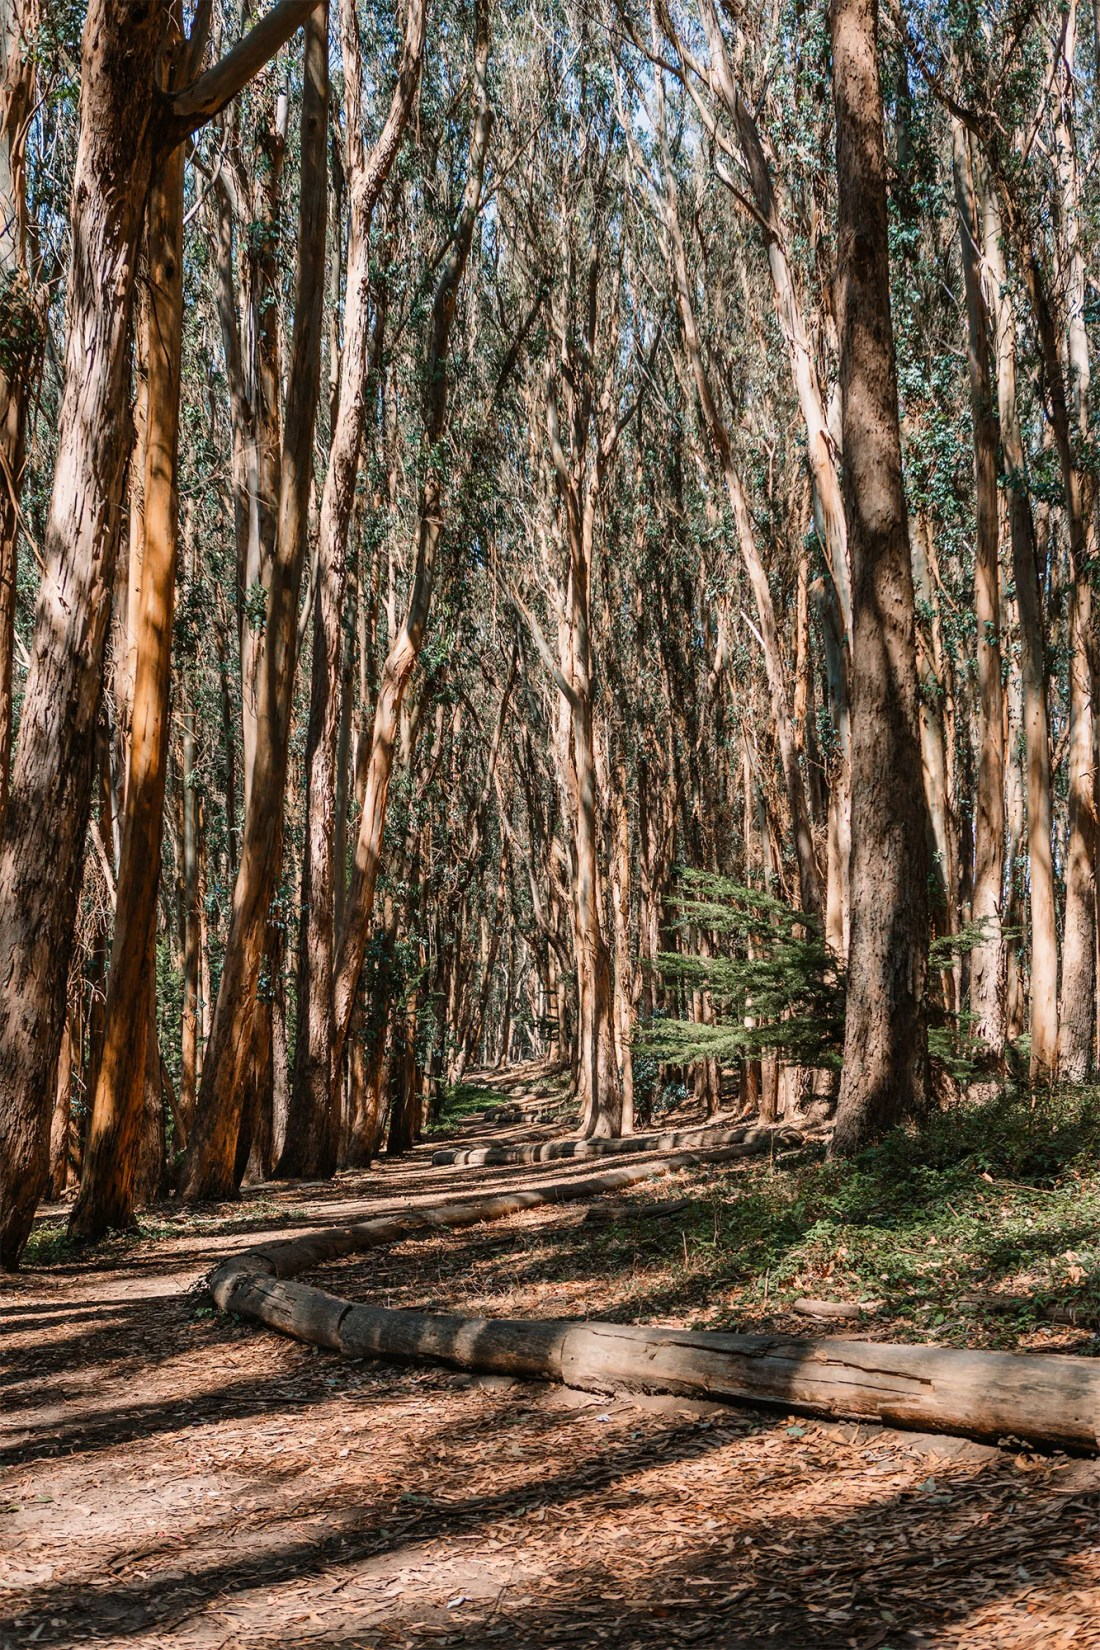 Andy Goldsworthy's Wood Line in Presidio Park San Francisco, California   Local Love and Wanderlust